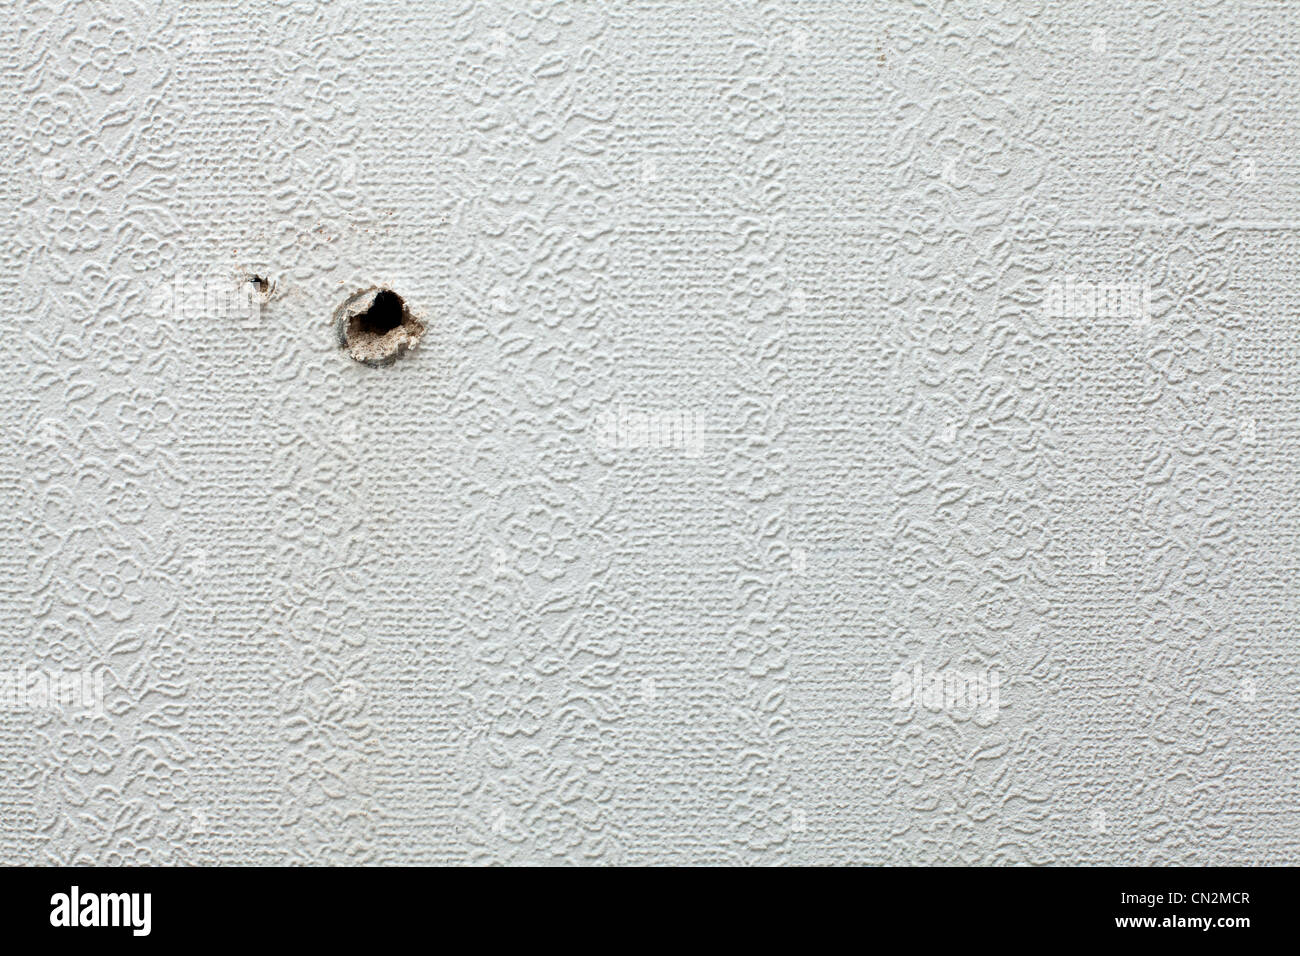 Holes in wall - Stock Image